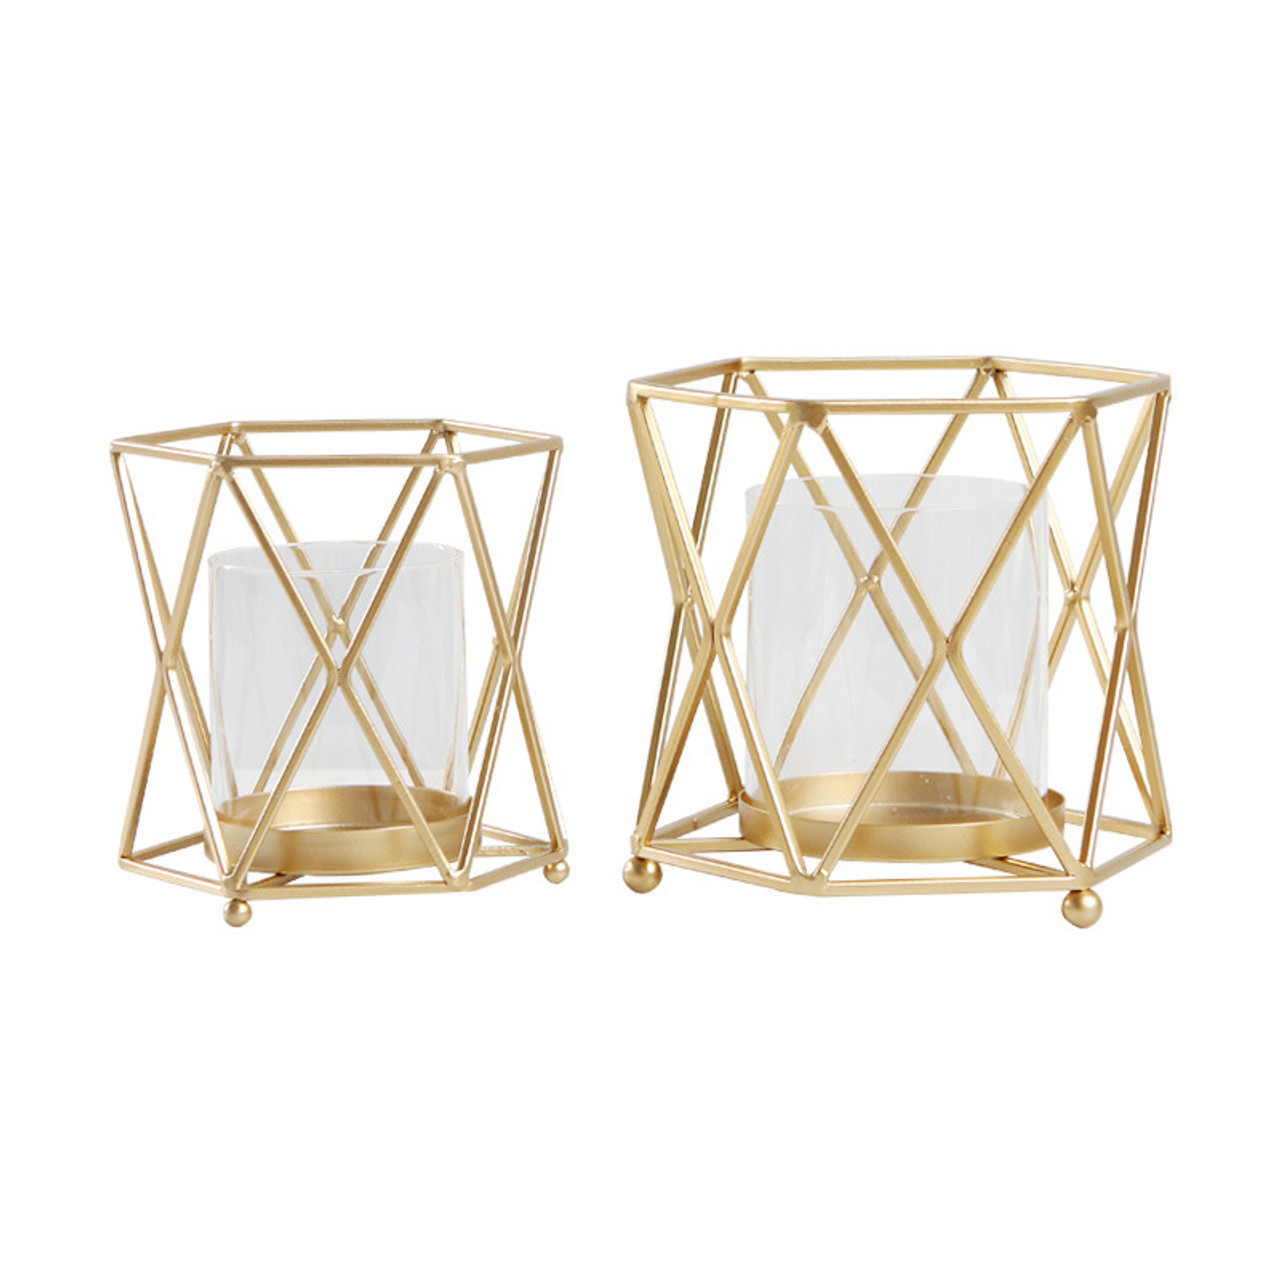 Geometric Candle Holder Gold Windproof Metal Candle Lantern With Glass Cylinder Scandinavian Coffee Table Wedding Centerpieces